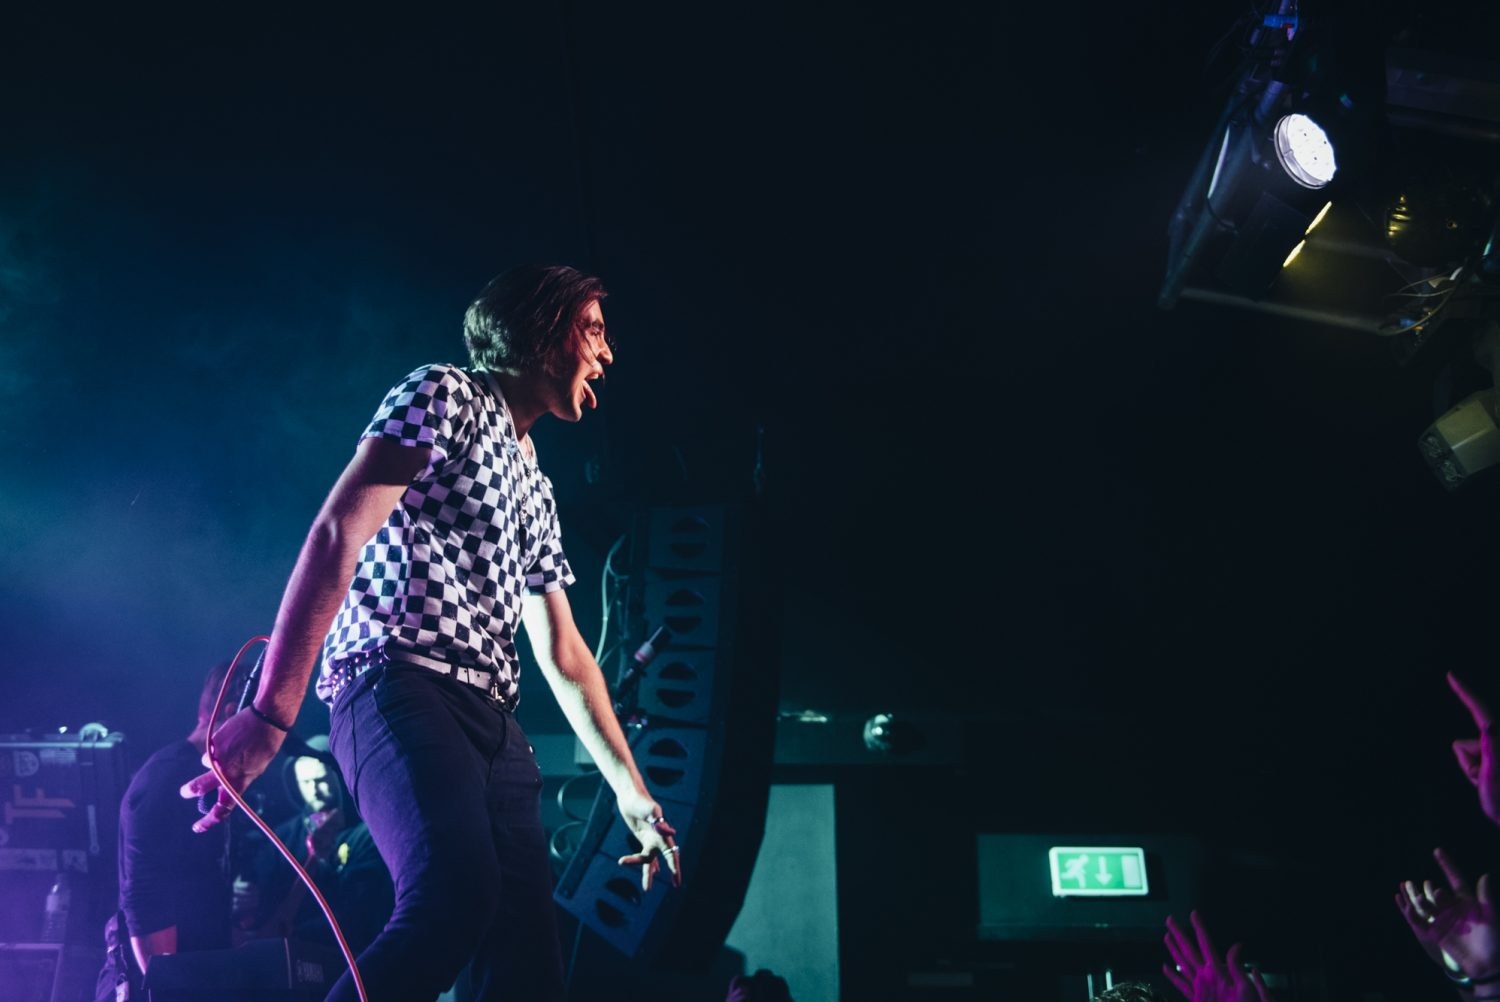 Check out these photos from The Faim's big ol' London show.